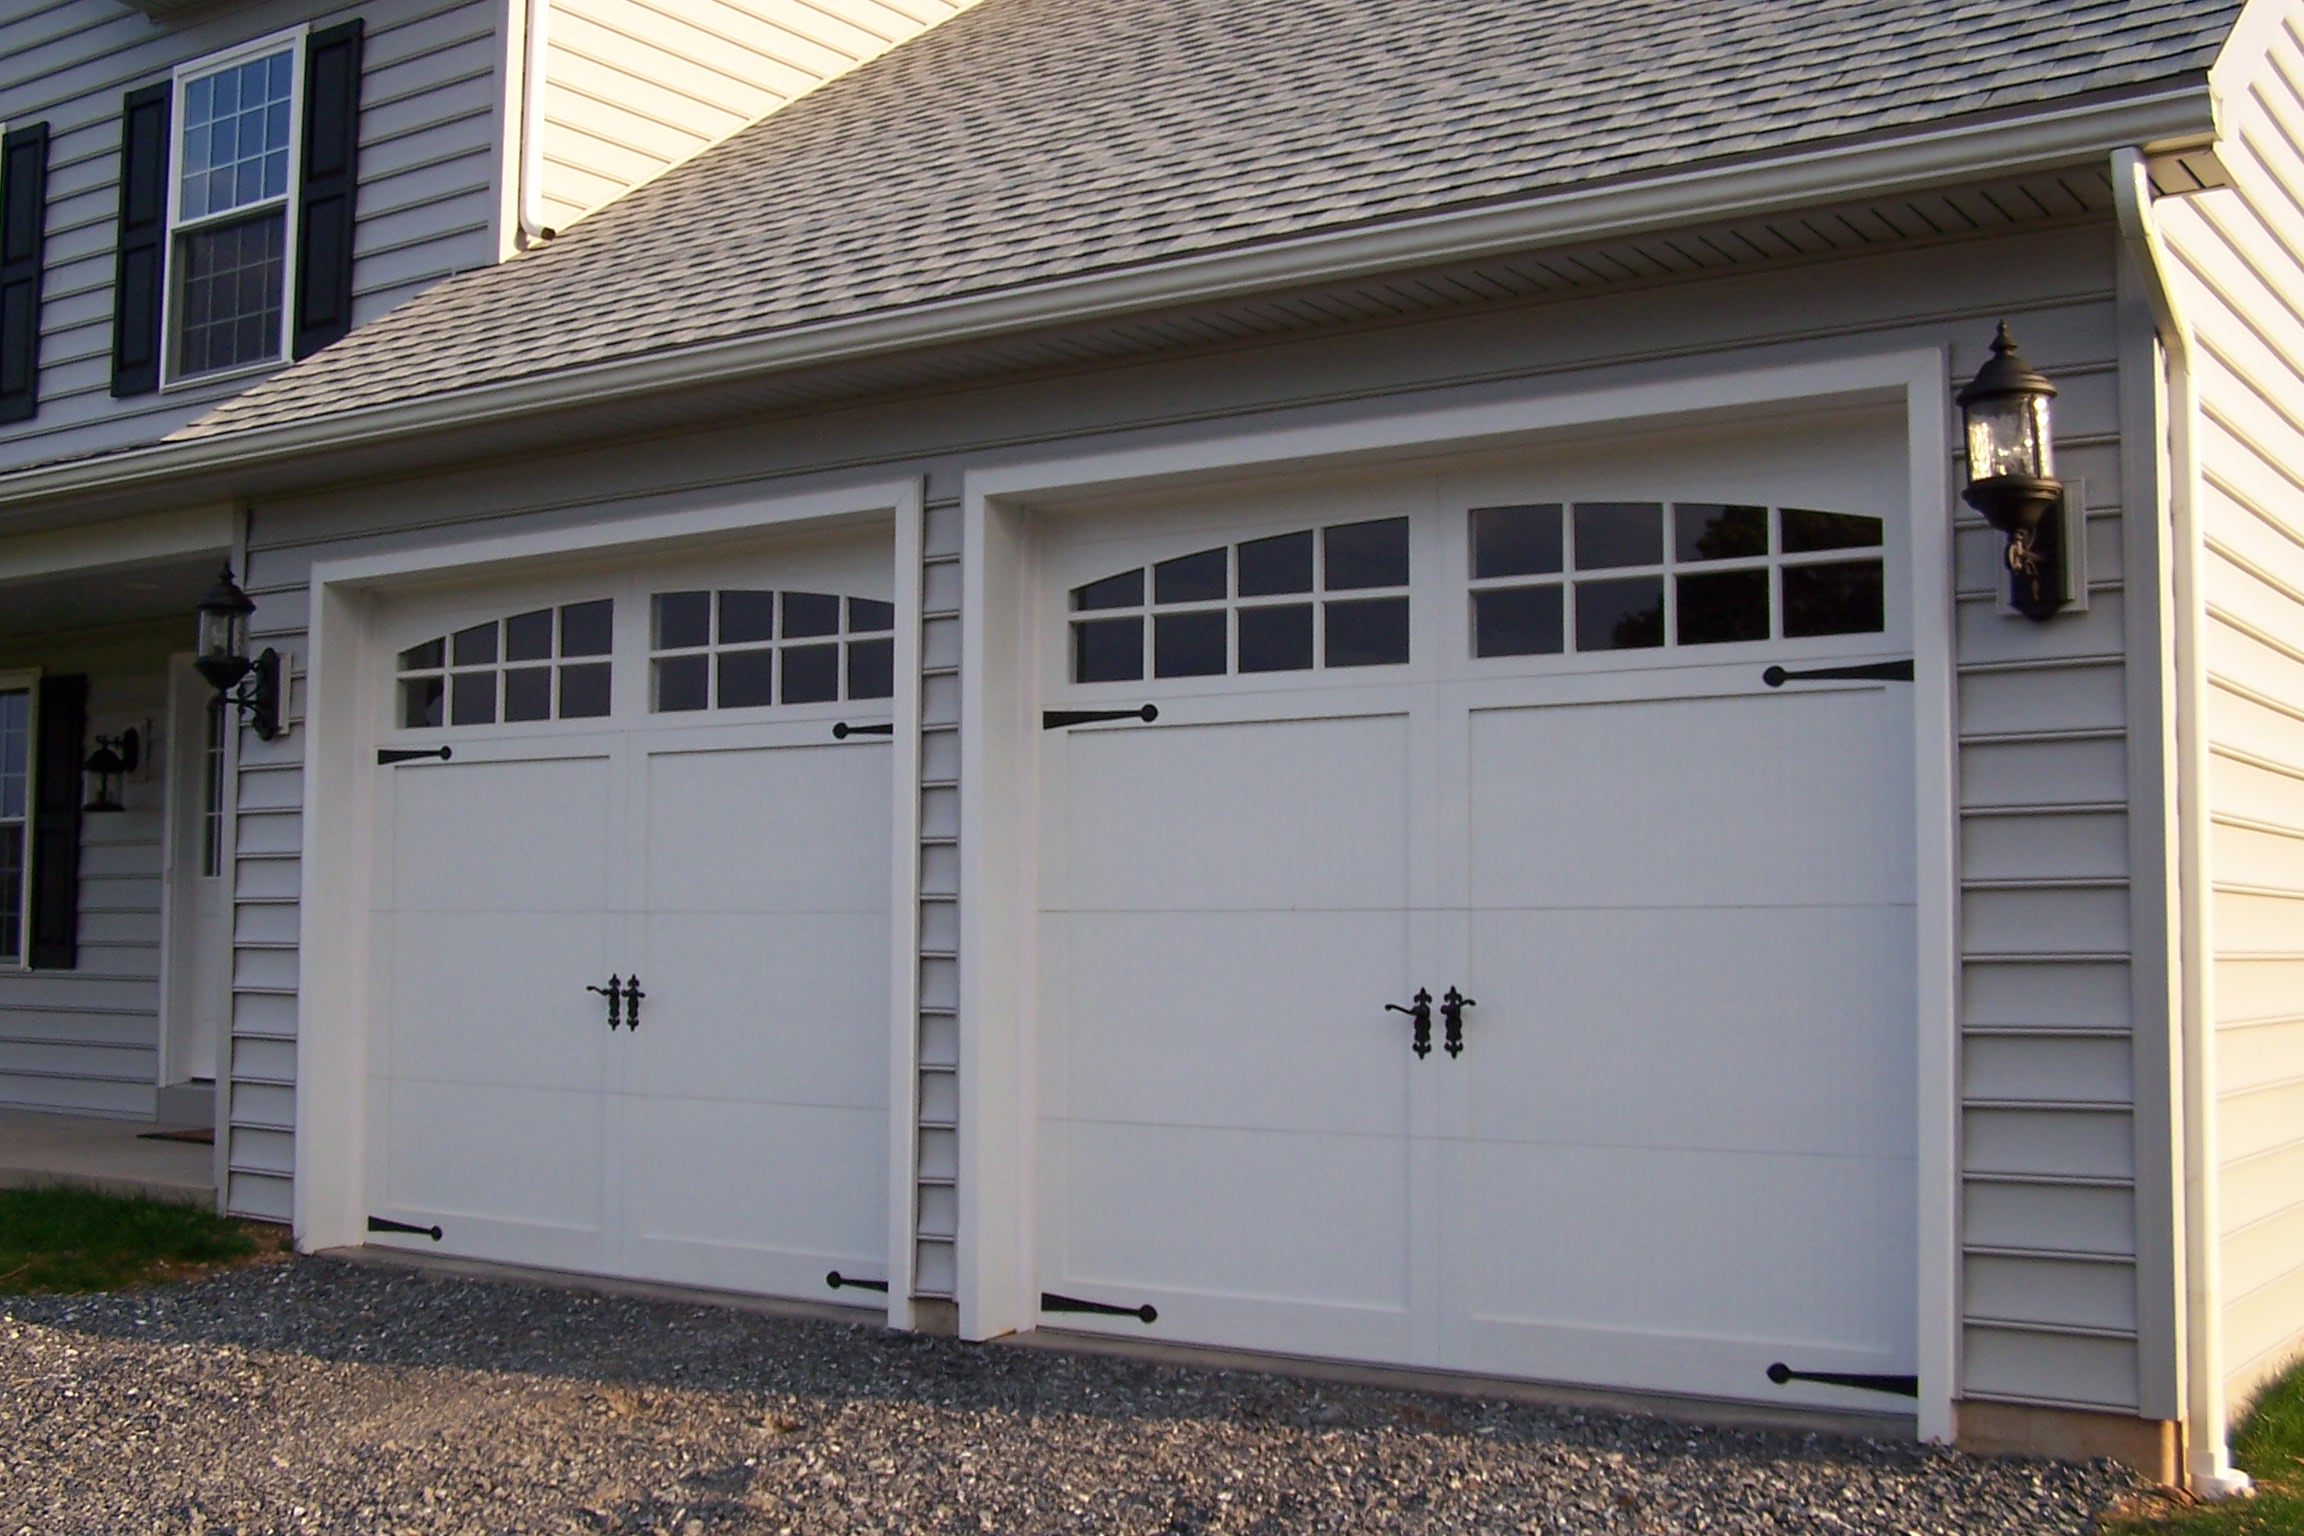 File sectional type overhead garage door jpg wikipedia for Sectional glass garage door